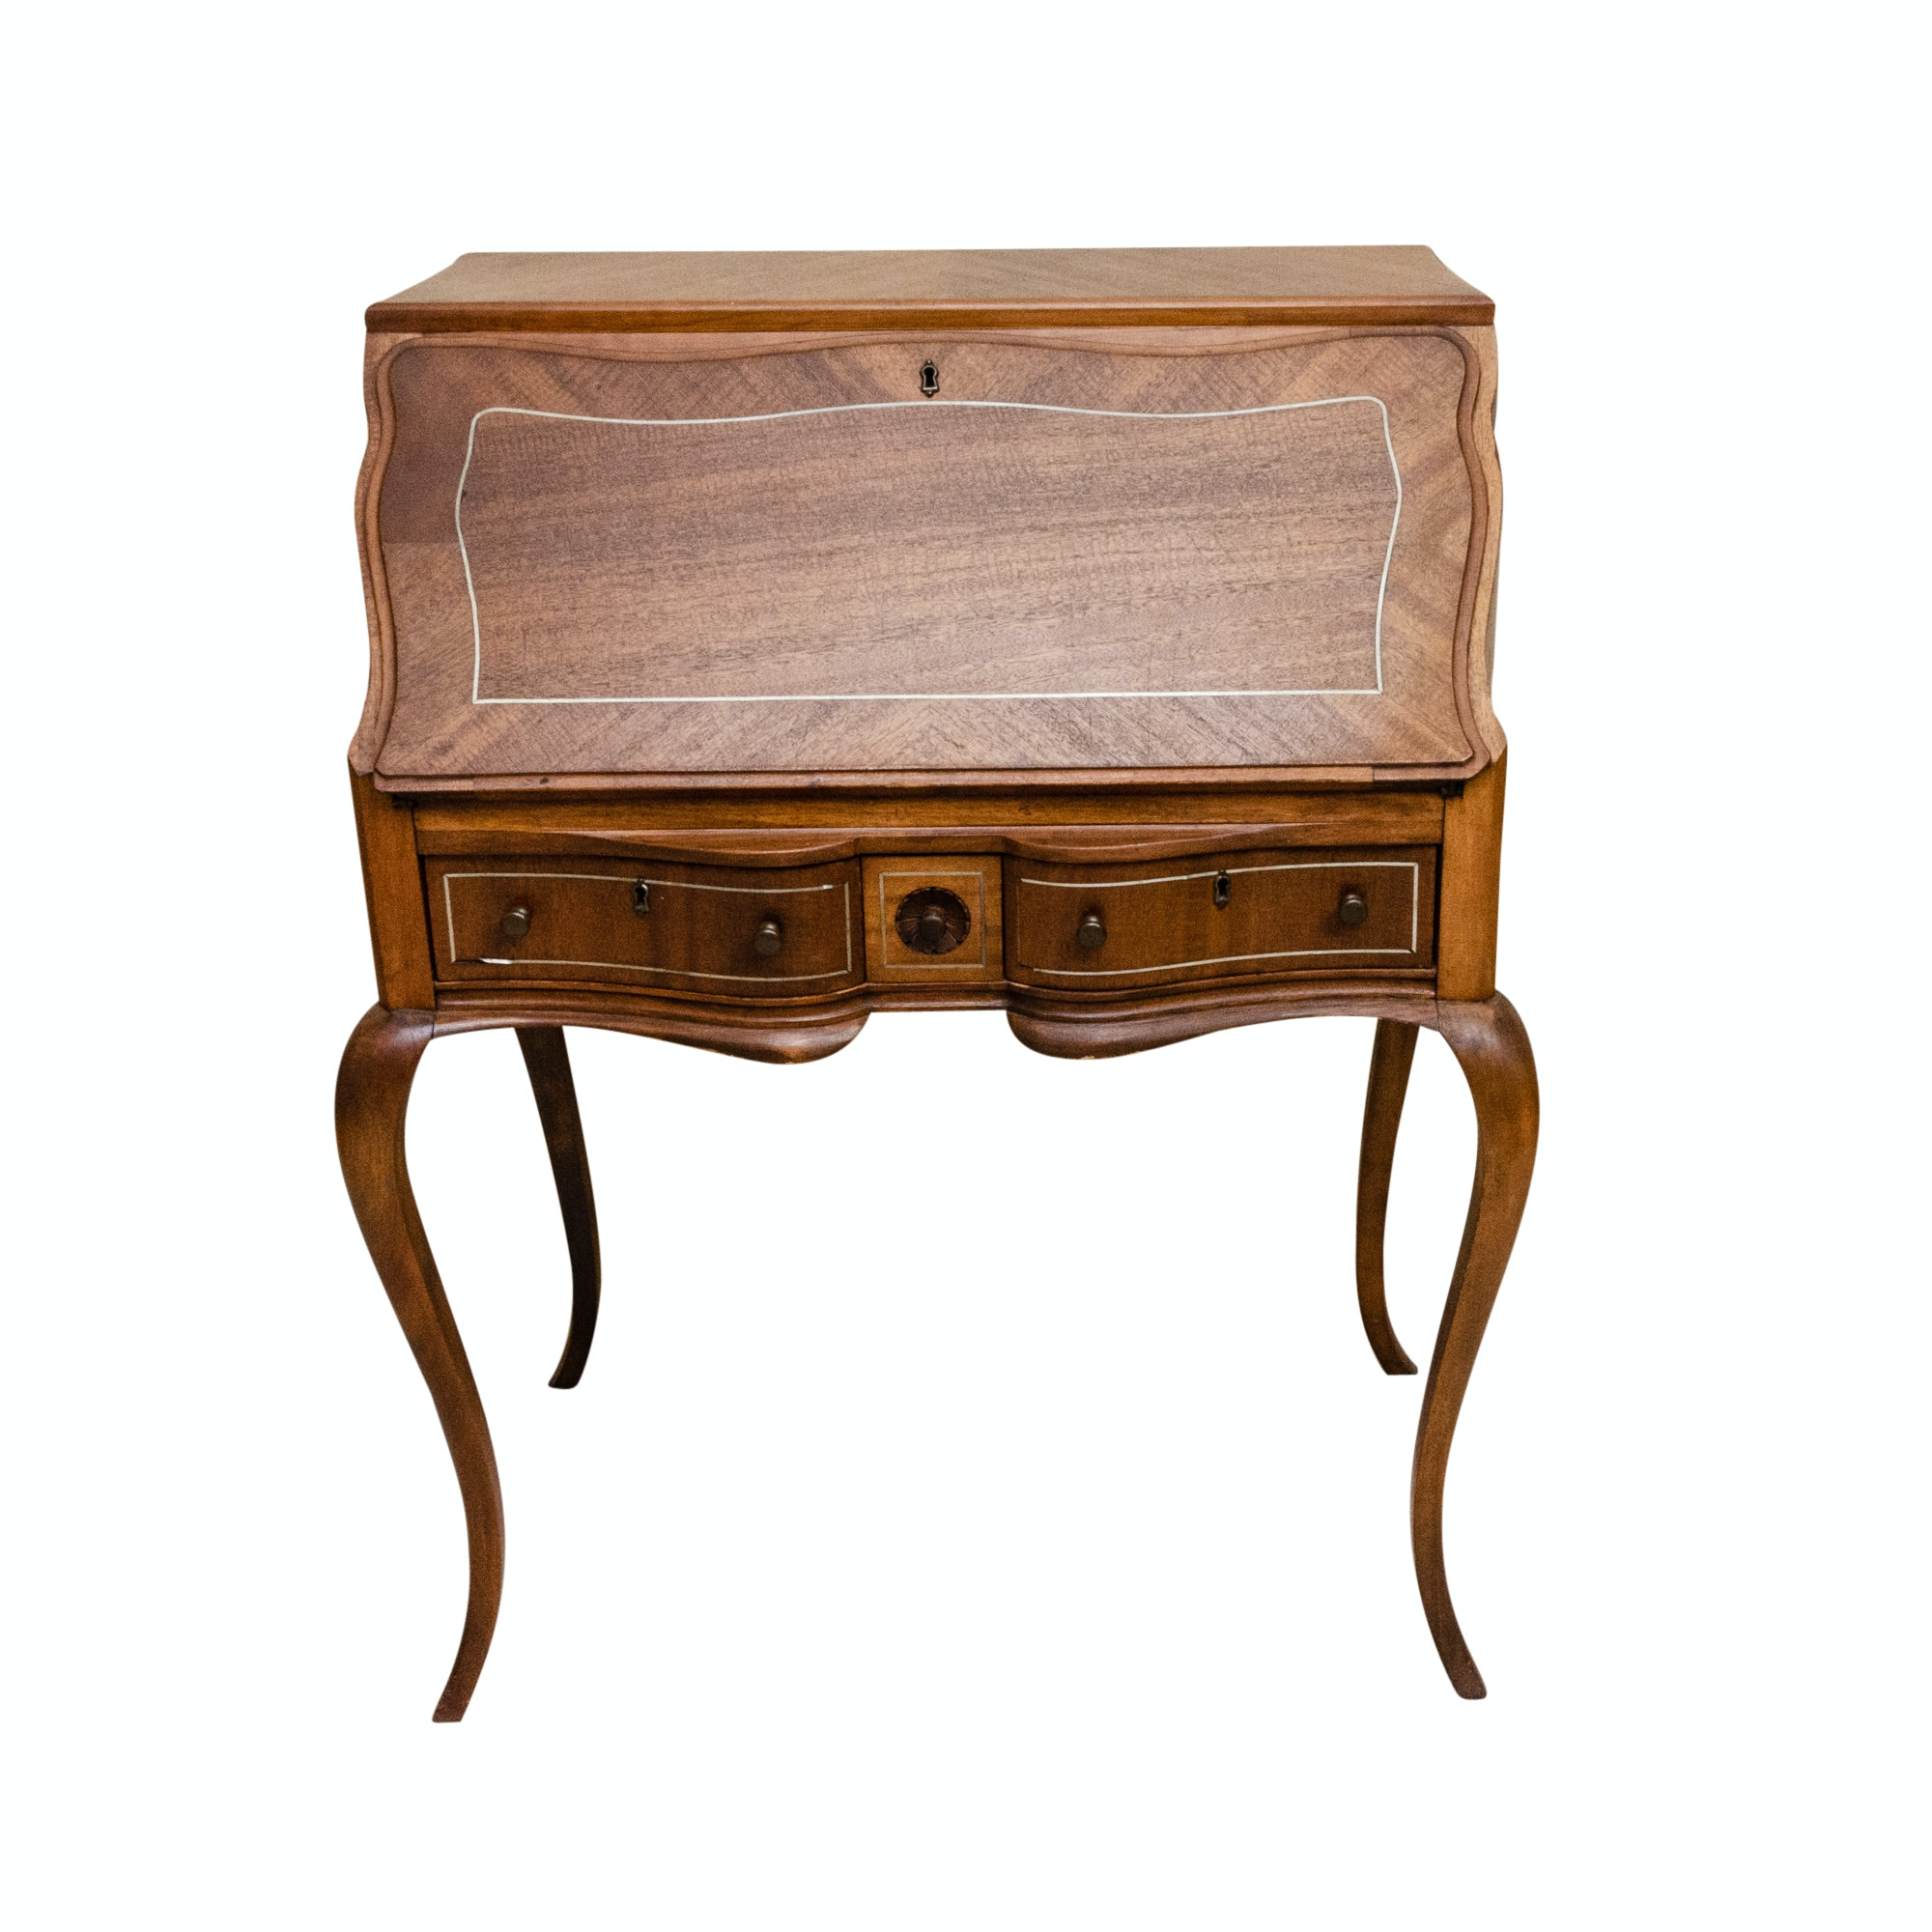 Louis XV Style Mahogany Desk with Mother of Pearl Inlay, 19th Century